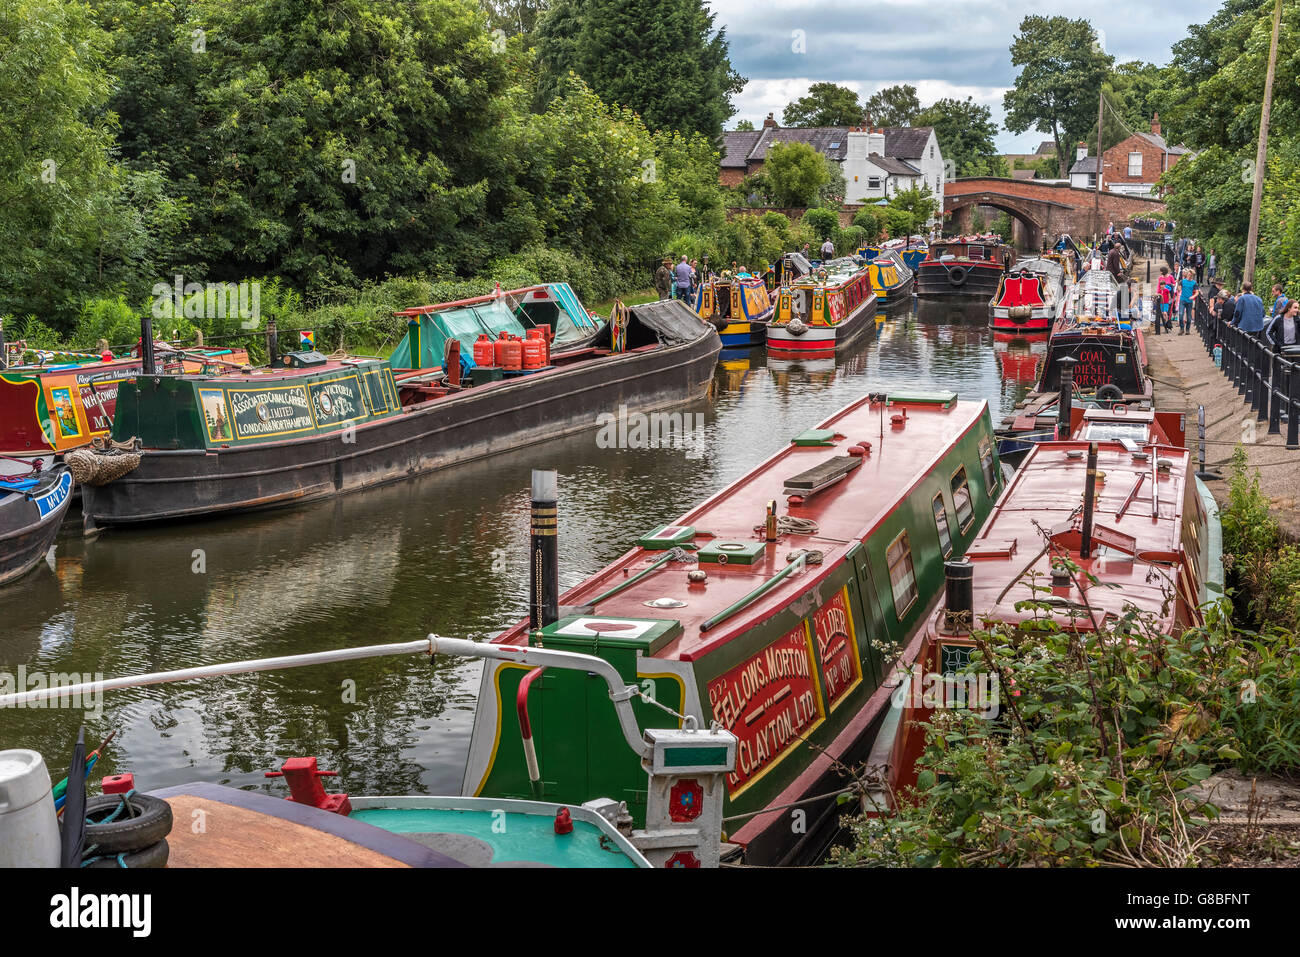 Vintage transport day at Lymm in Cheshire North West England. Parade of canal narrowboats on the Bridgewater. - Stock Image